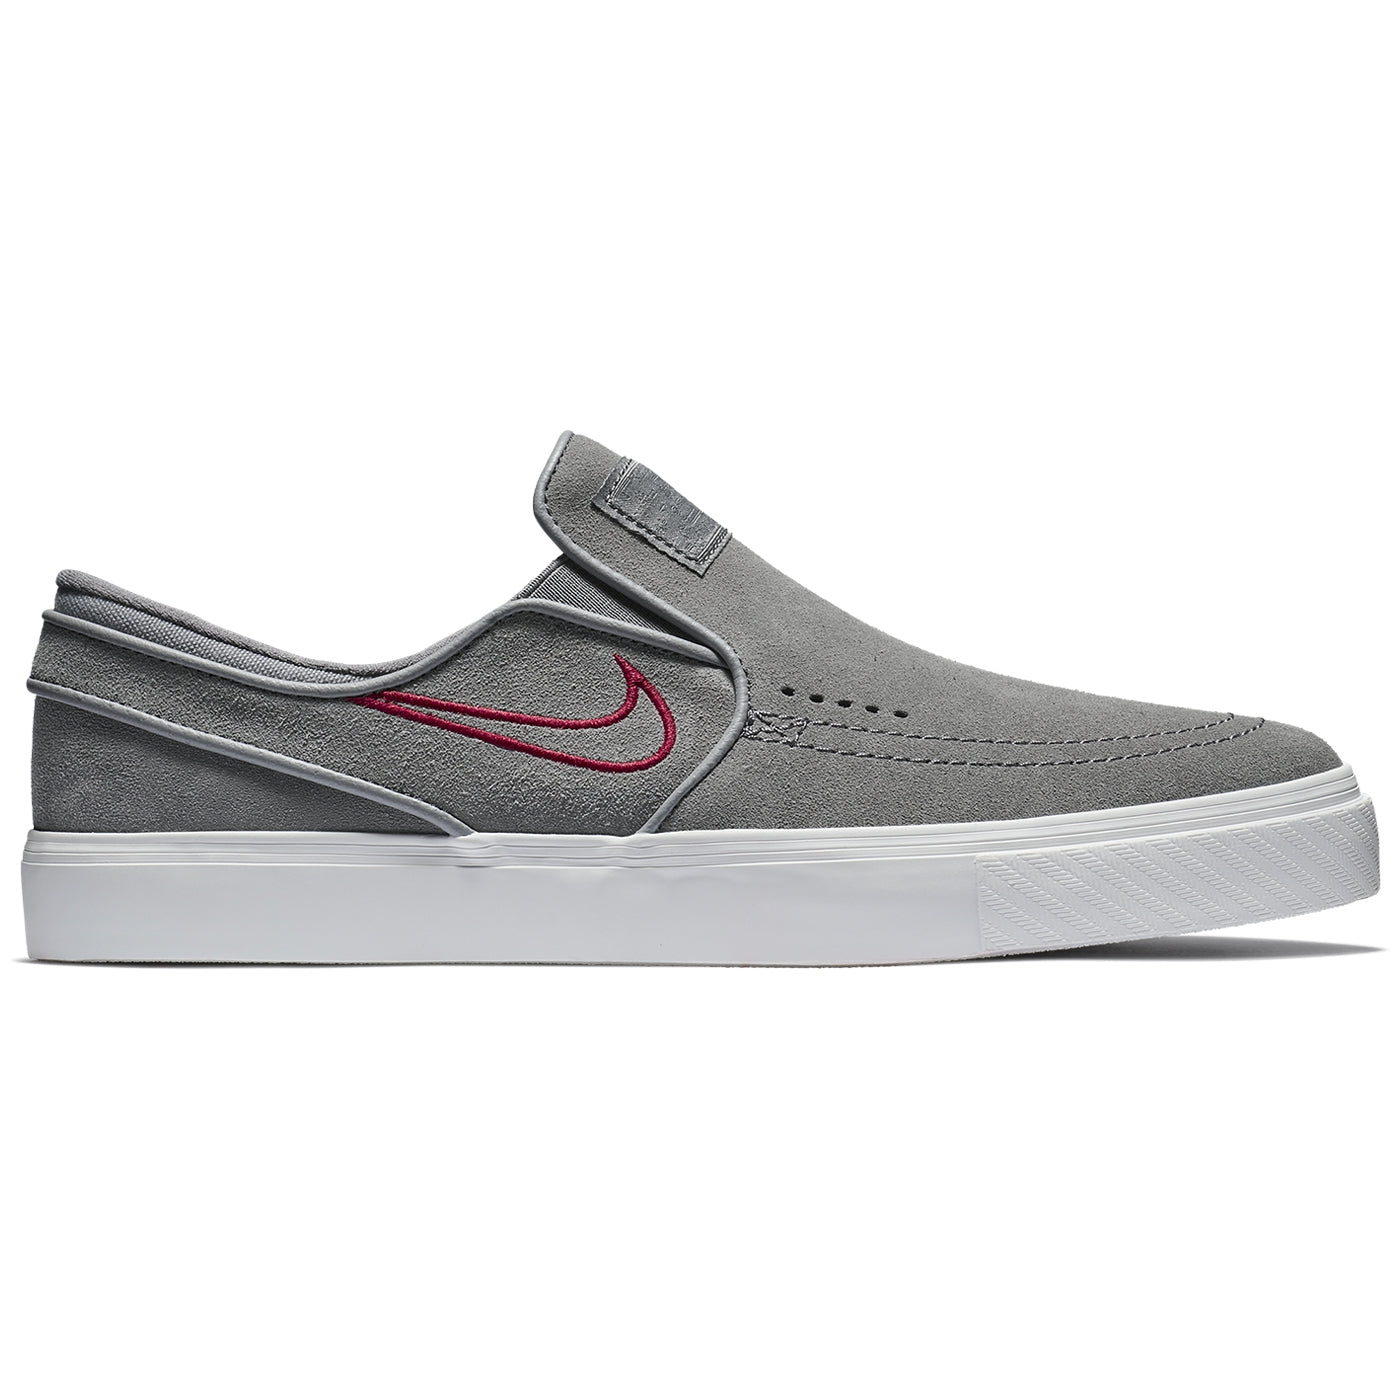 save off d6913 e2d32 Nike SB Zoom Stefan Janoski Slip Shoes - Gunsmoke   Gunsmoke - Red Crush